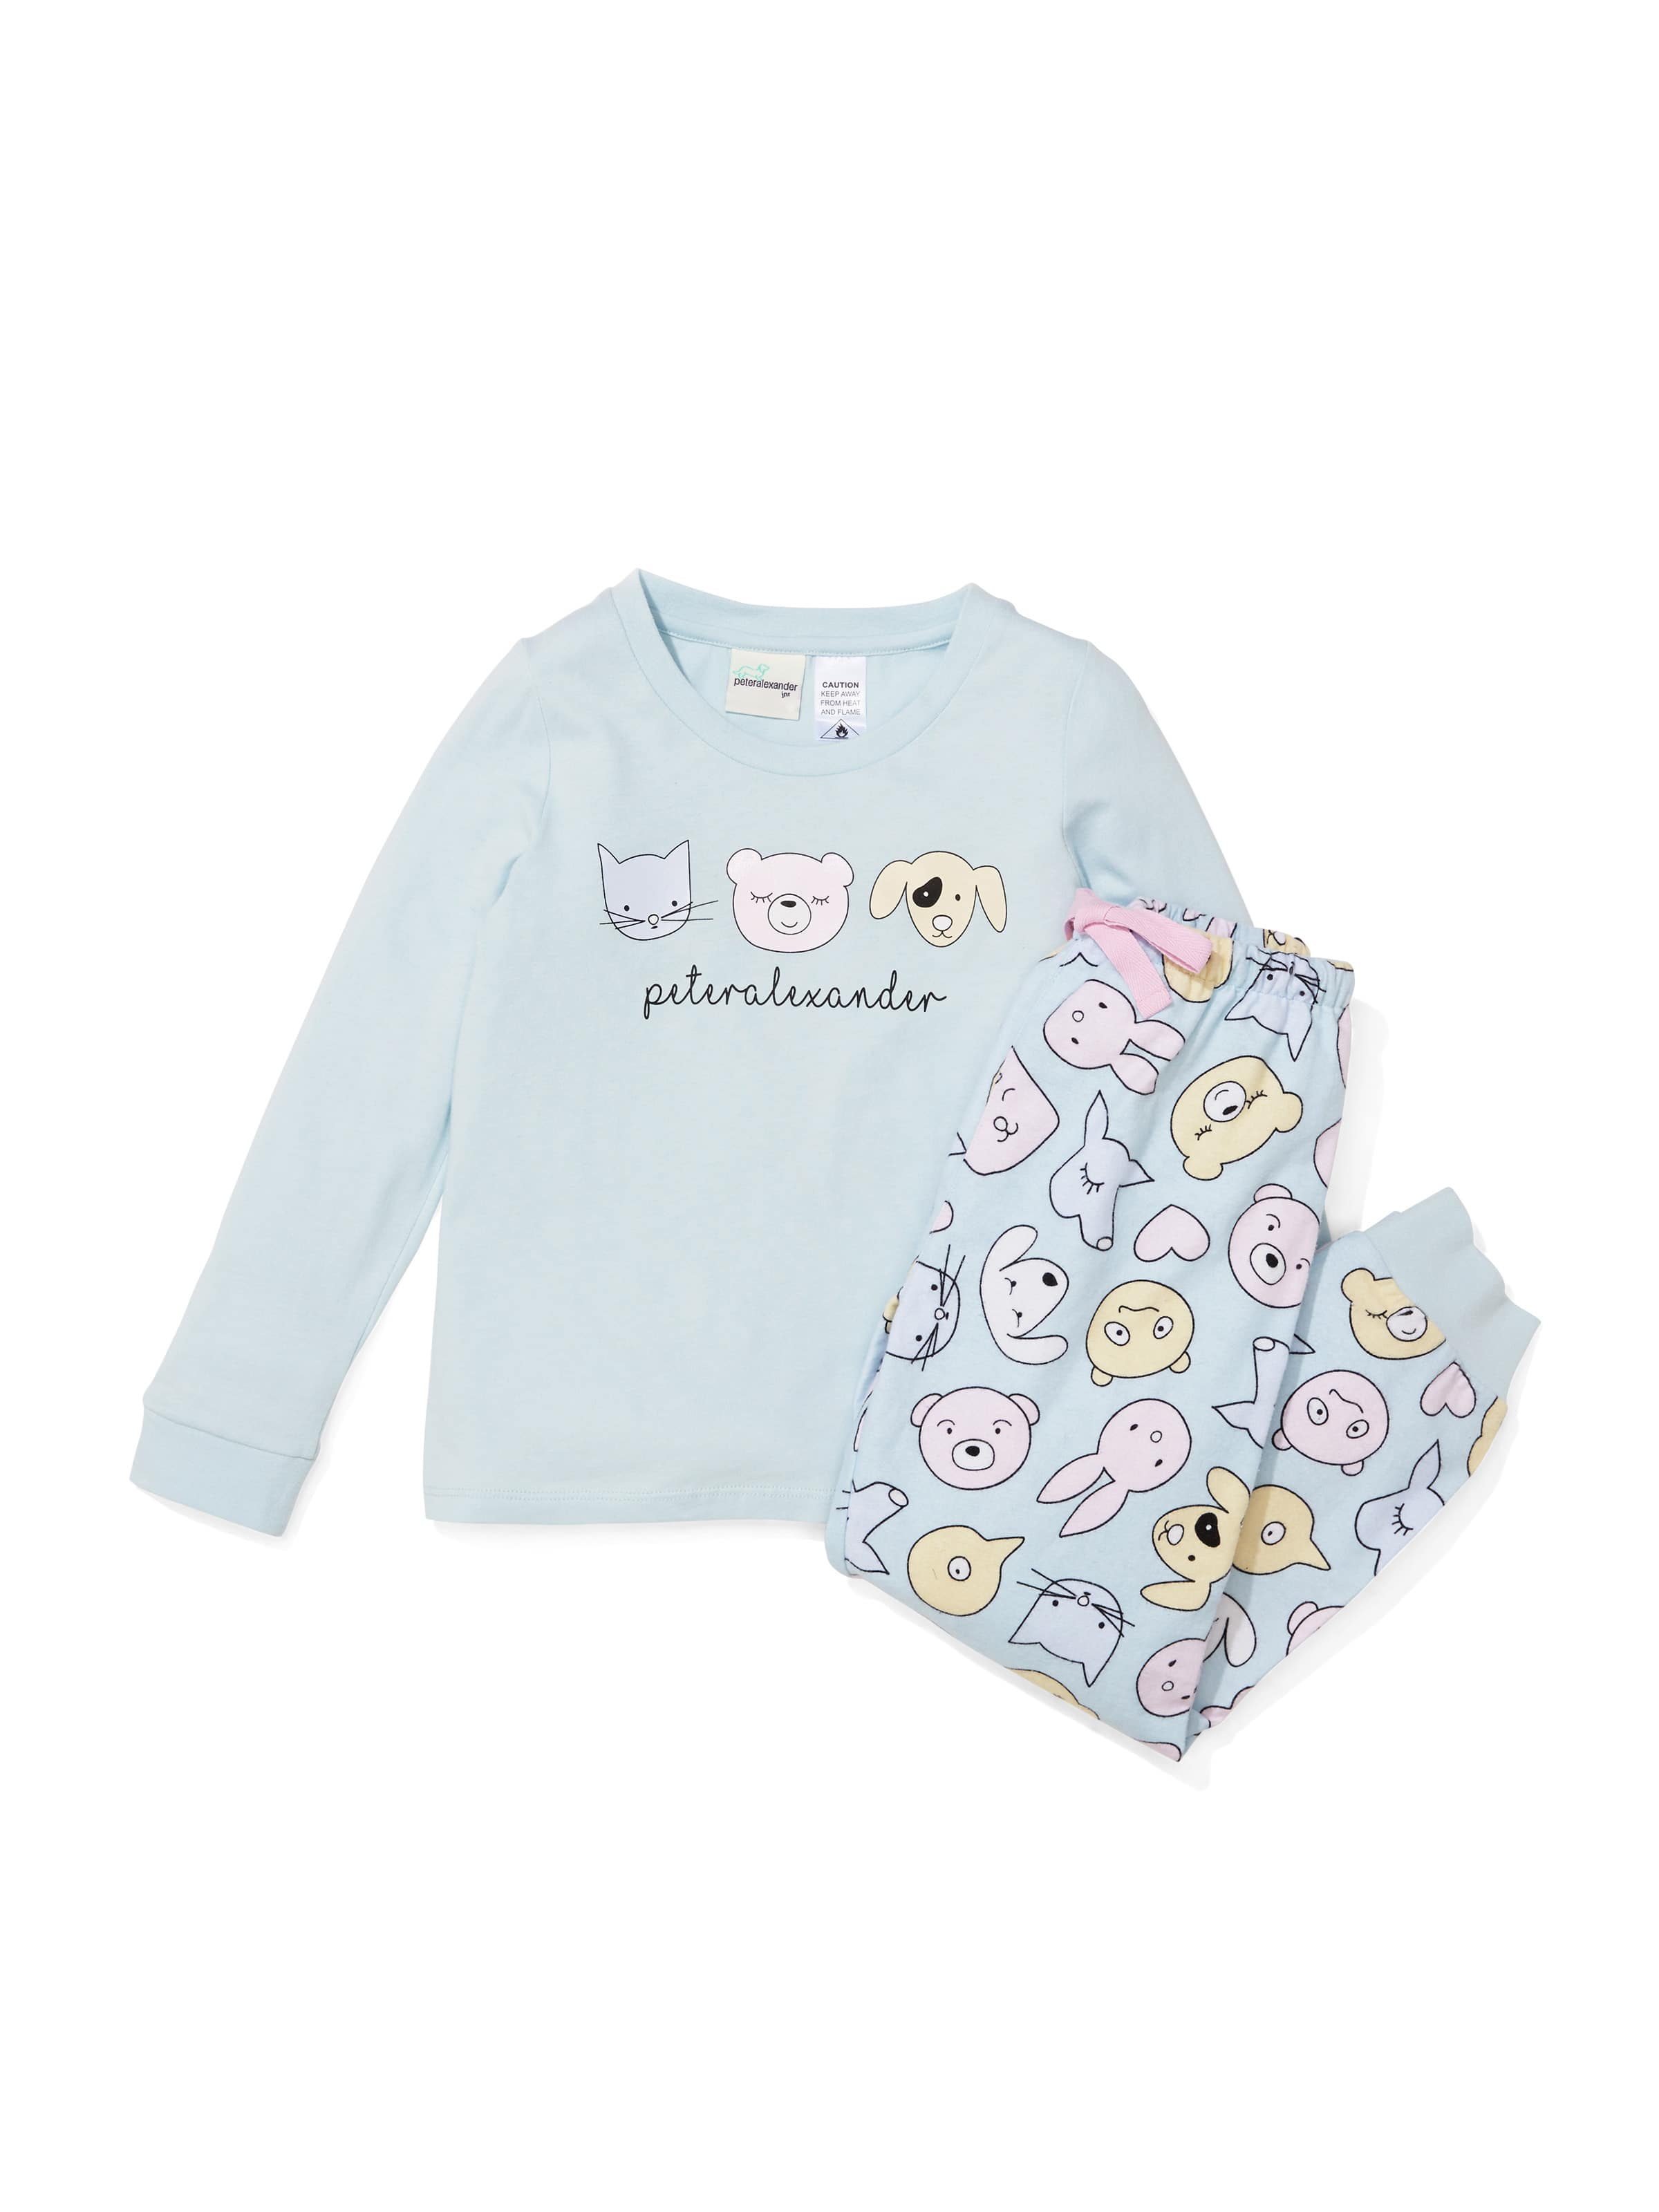 Girls Cute Animal Flannelette Pj Set